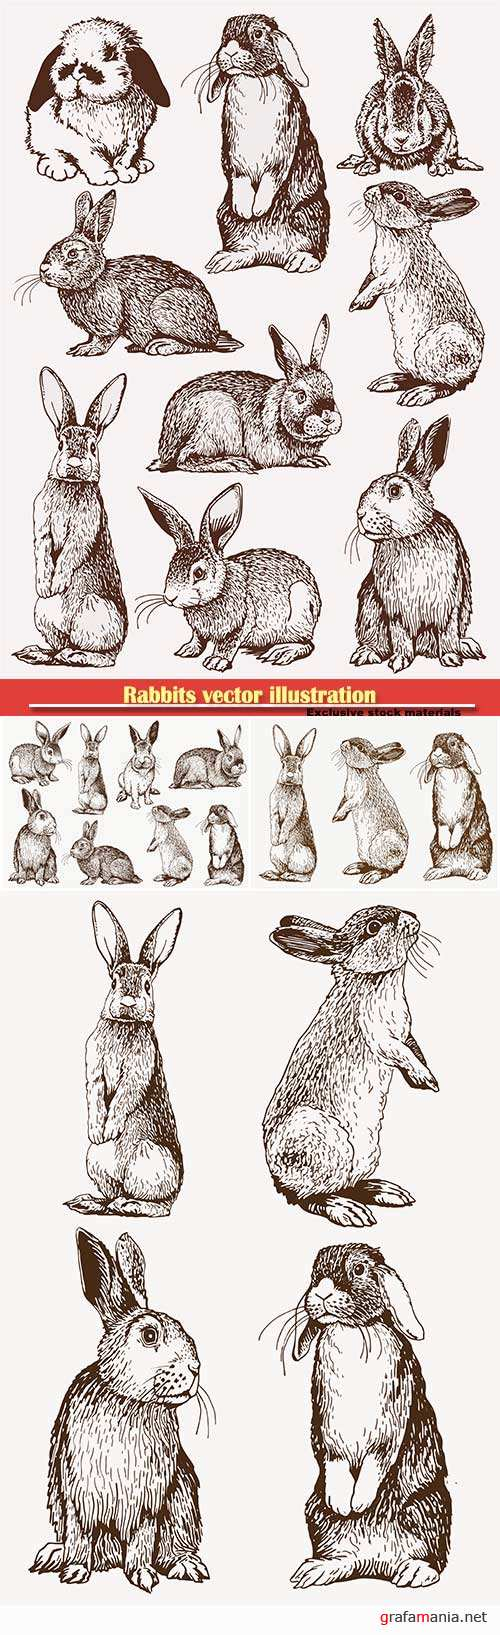 Rabbits vector illustration